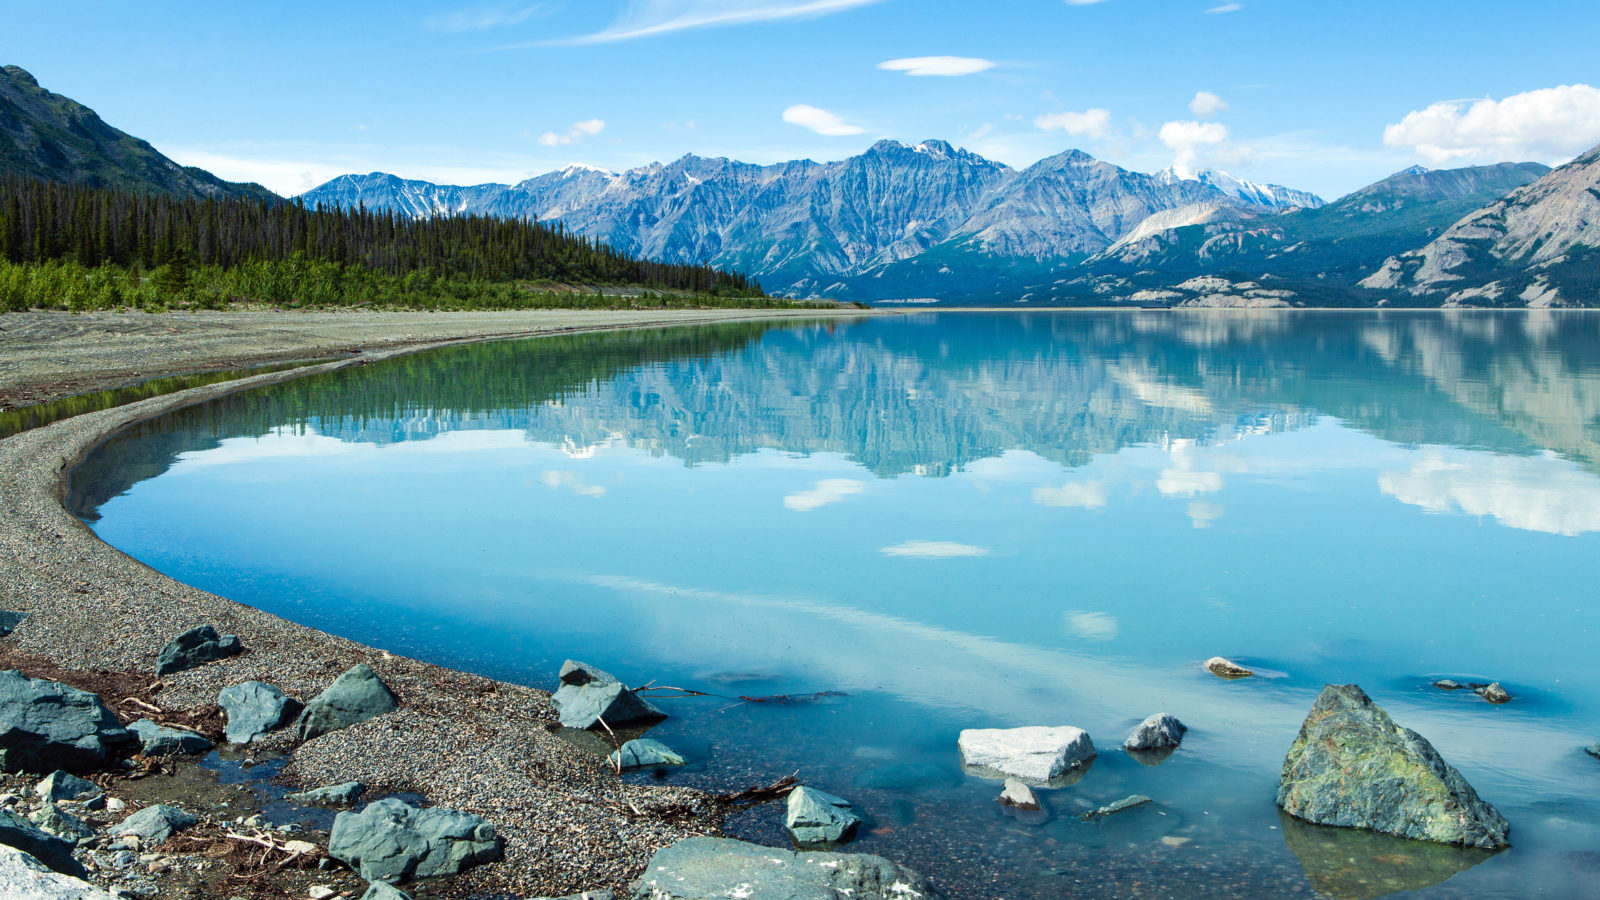 171 Nature Wallpaper Examples For Your Desktop Background 1600x900